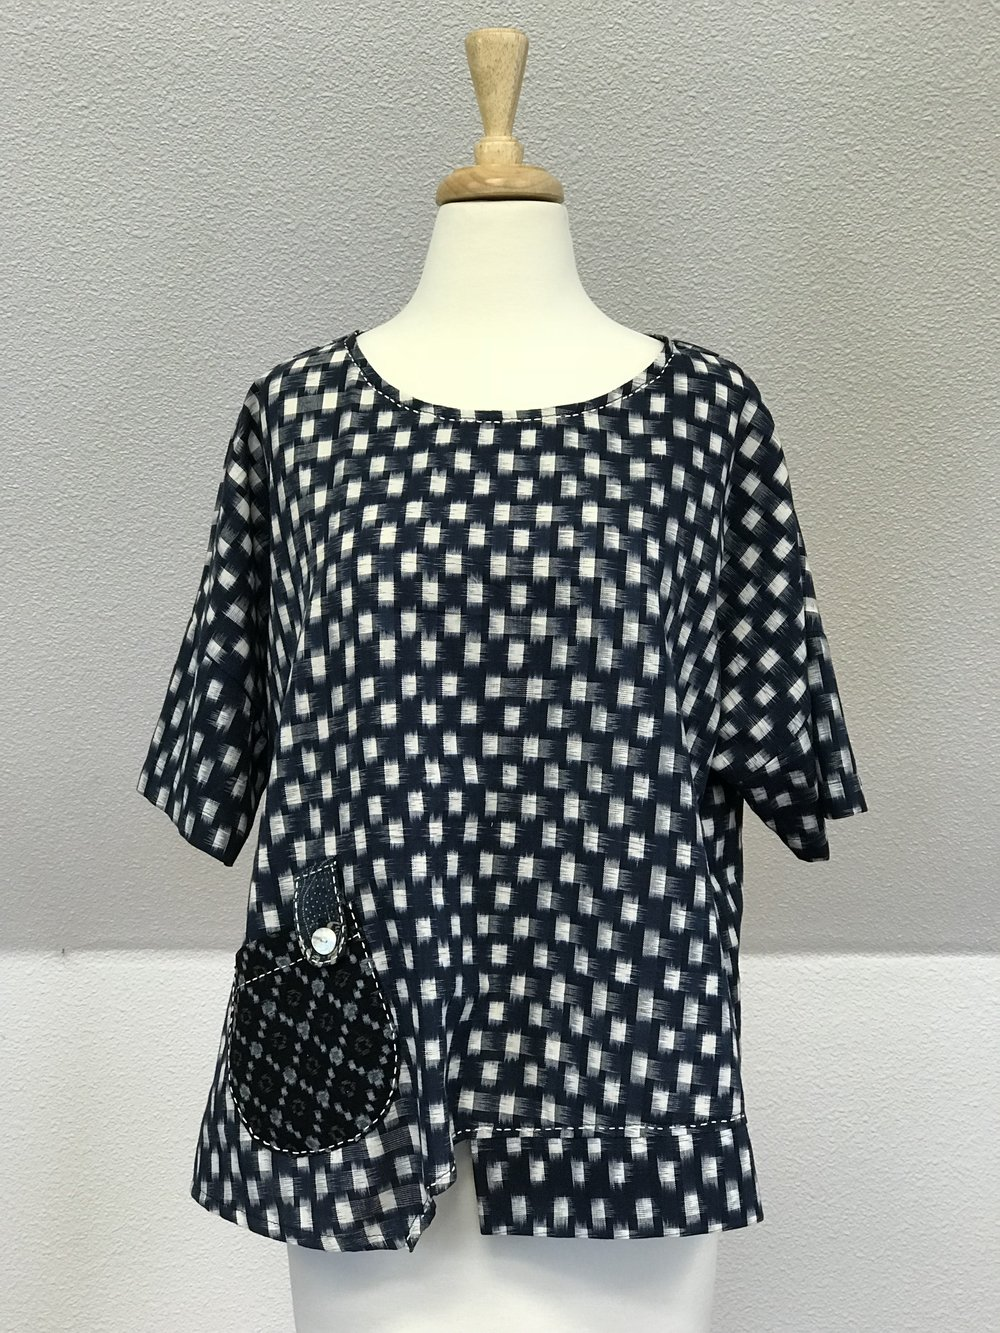 Sashiko One Pocket Blouse - Ikat textile body , Vintage Kasuri Pocket with Sashiko stitchesNavy / Natural     100% Cotton